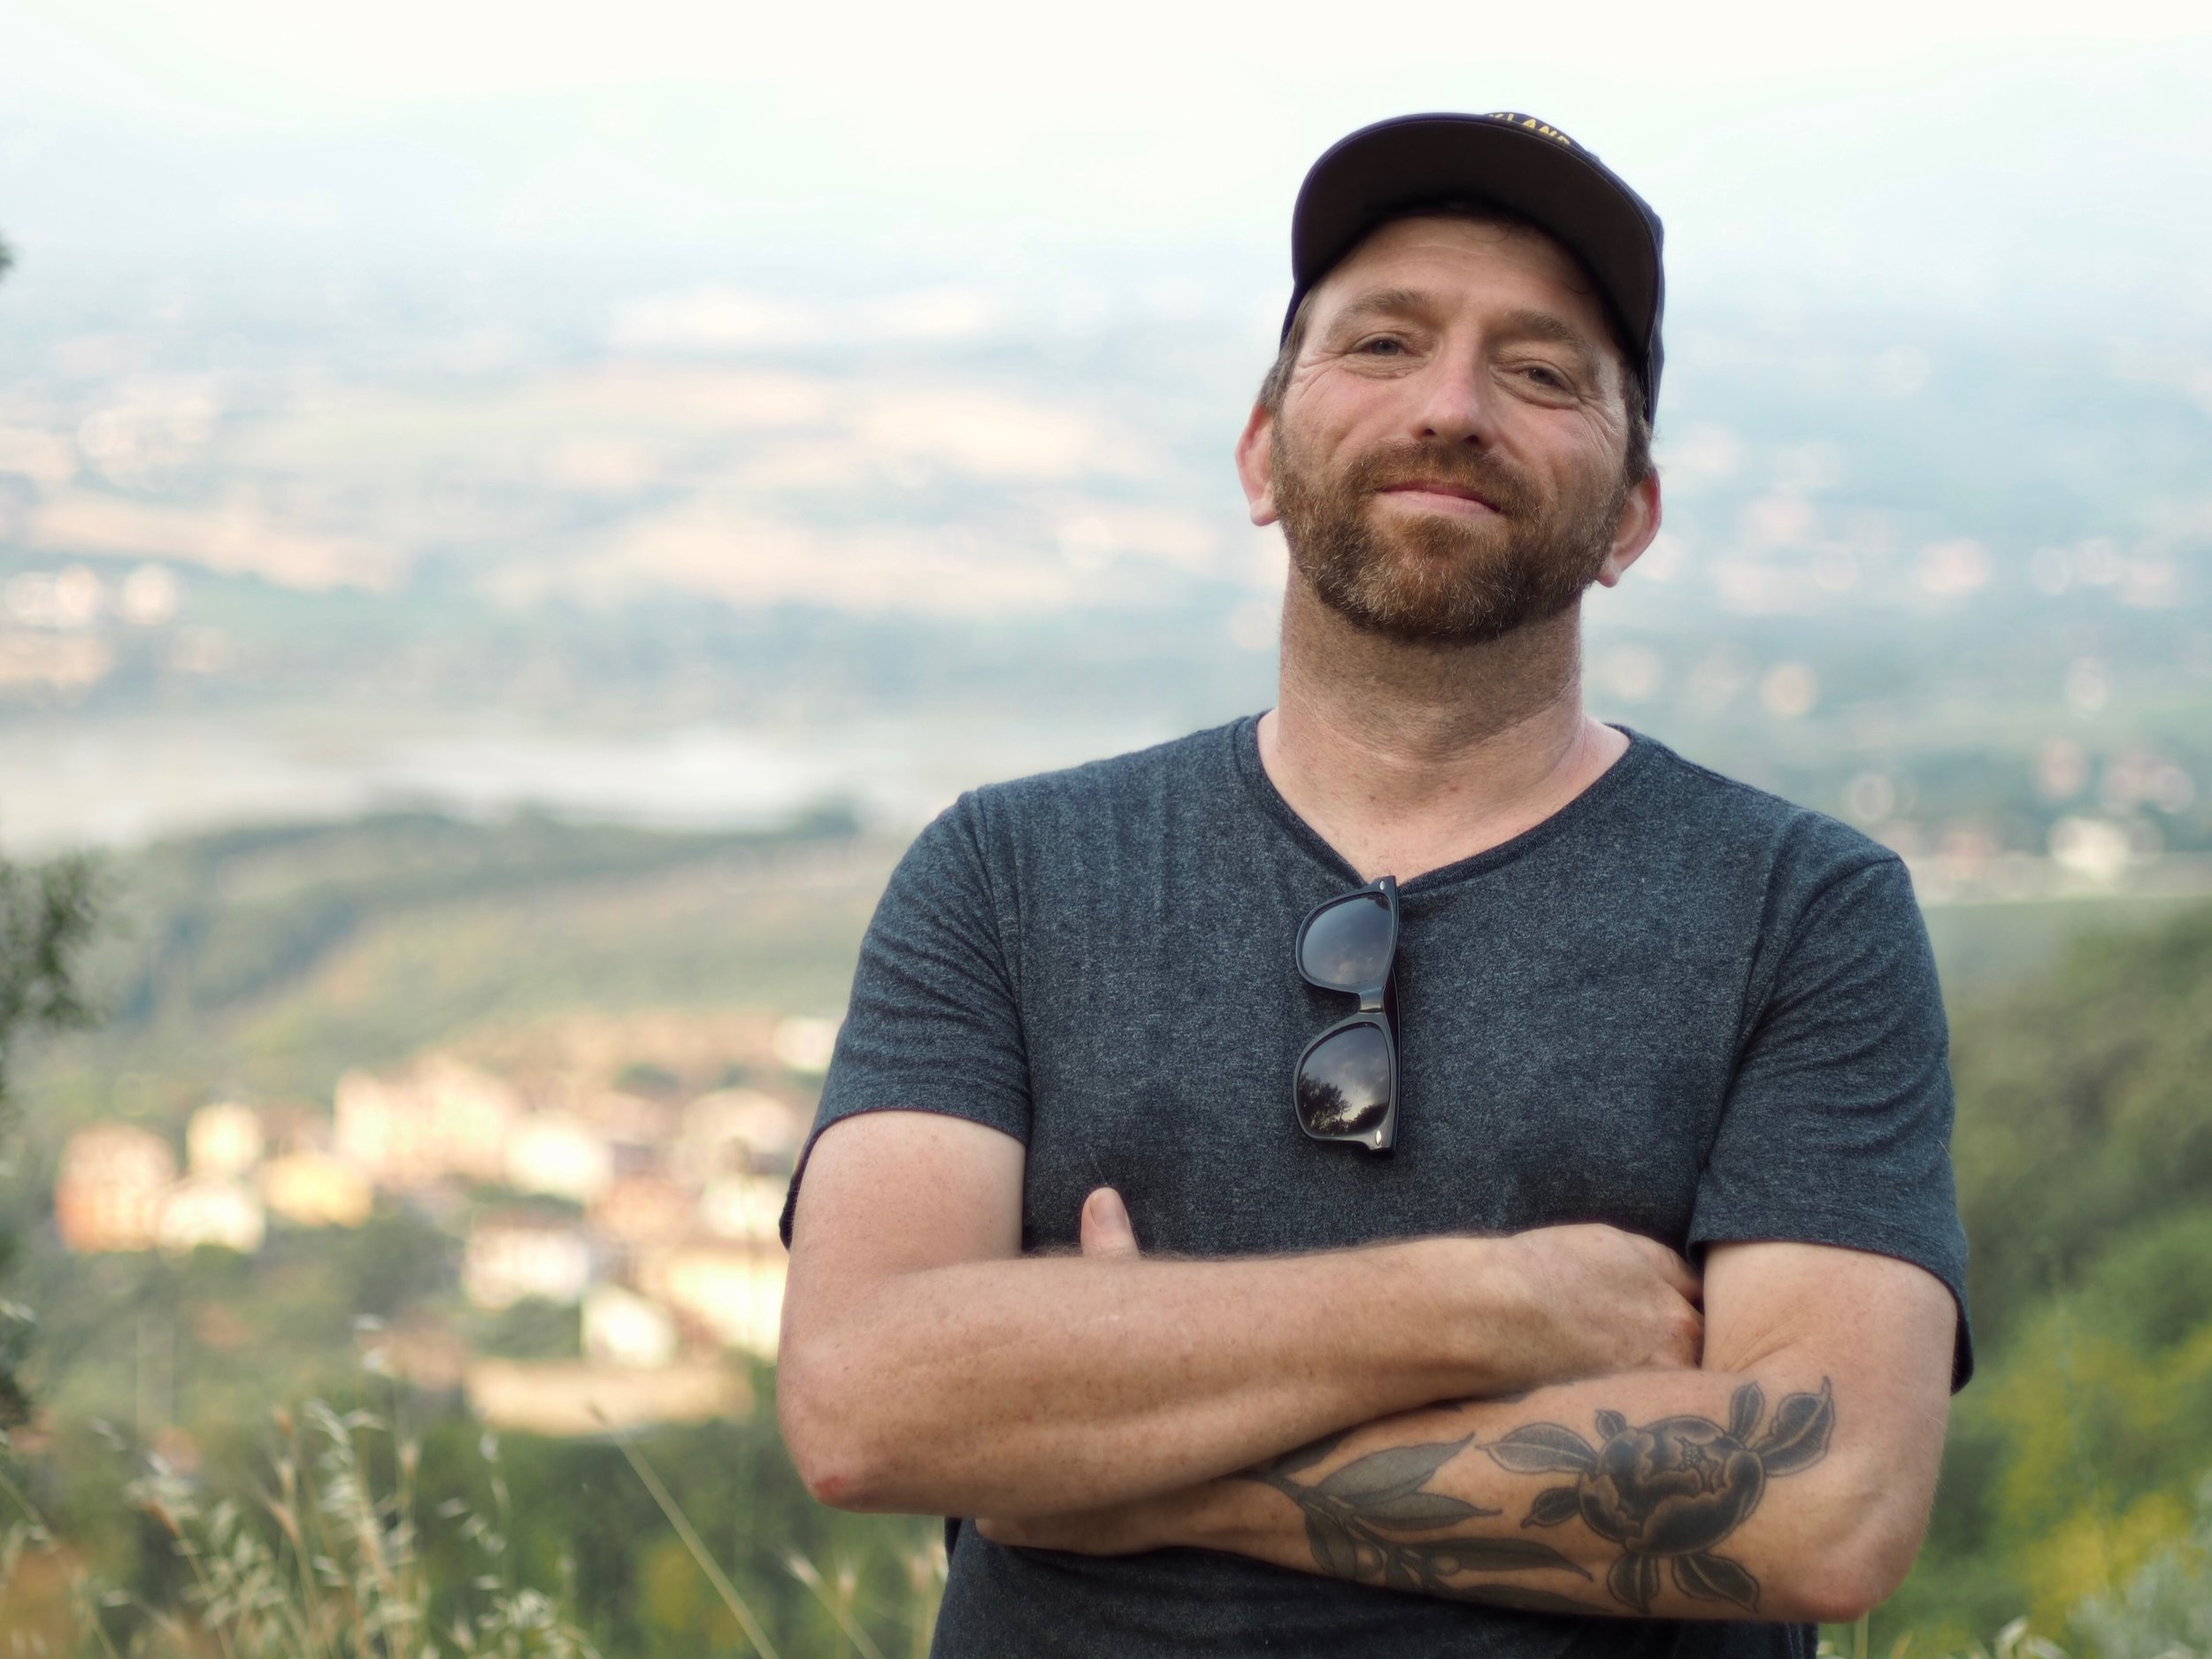 above Narni, scouting painting spots in Umbria, Italy, summer 2019, during my residency with JSS in Civita photo: Jesse Baldwin